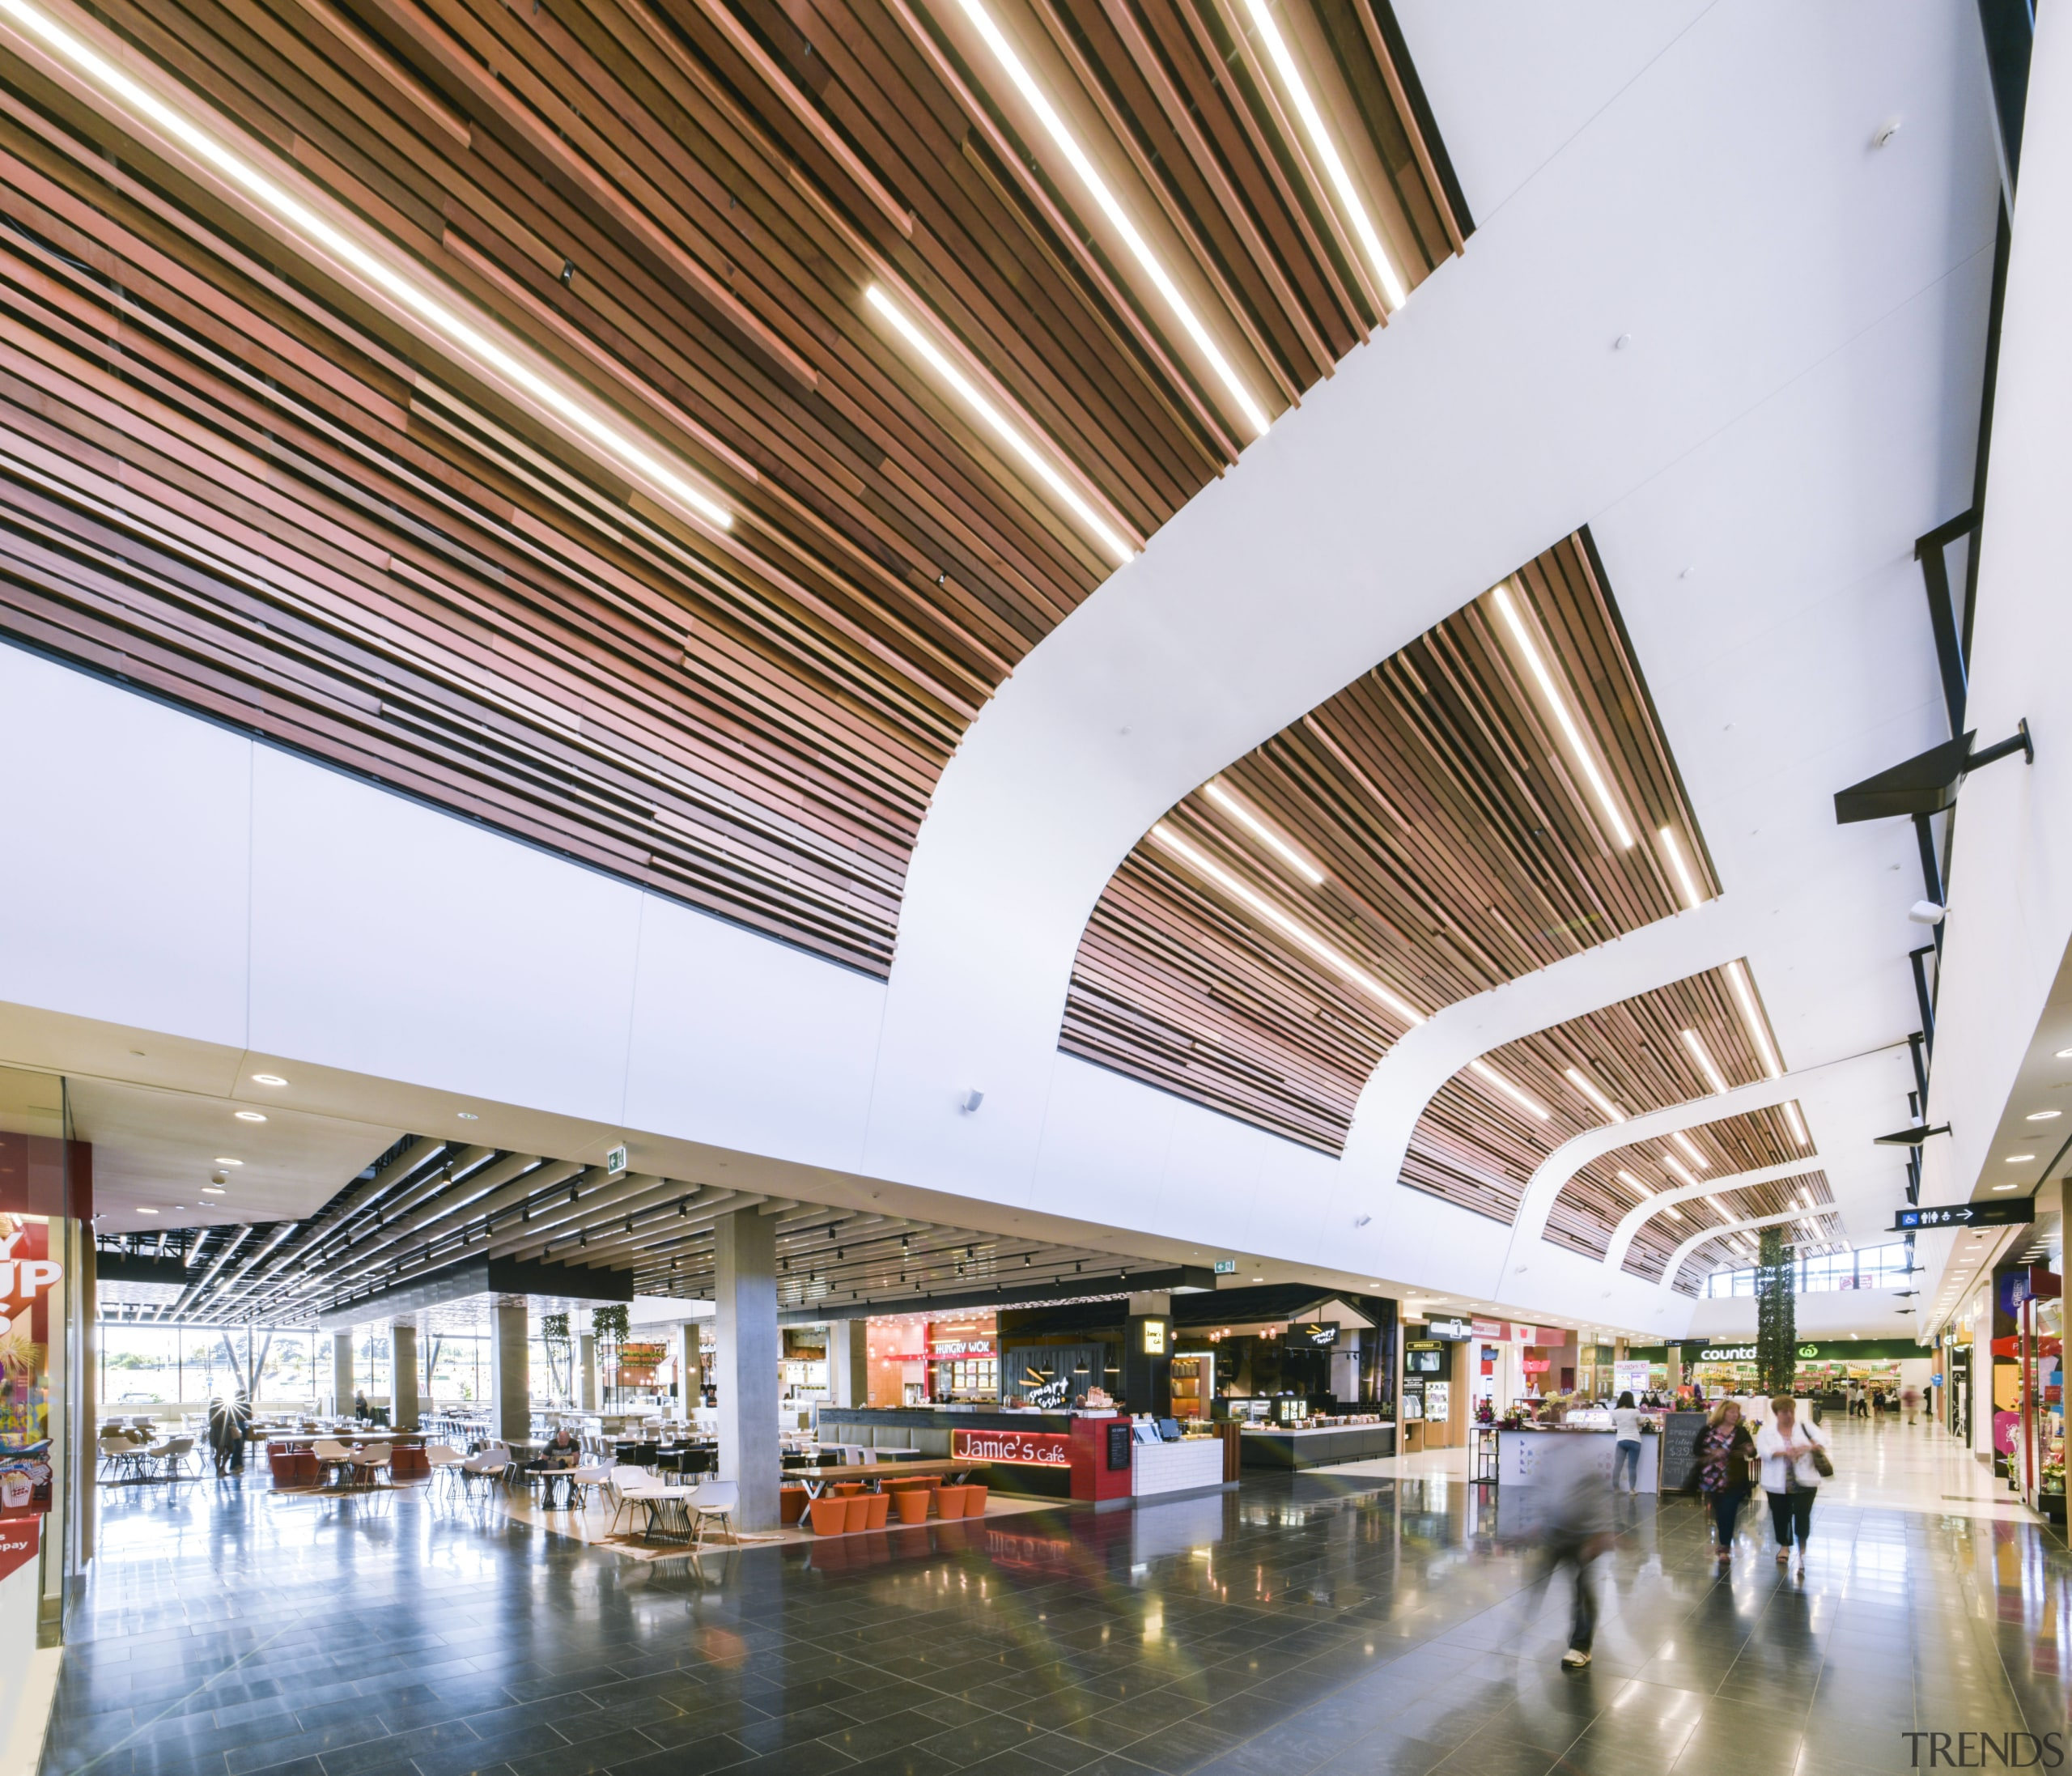 Clerestory windows run the length of the North airport terminal, architecture, ceiling, daylighting, lobby, metropolitan area, shopping mall, white